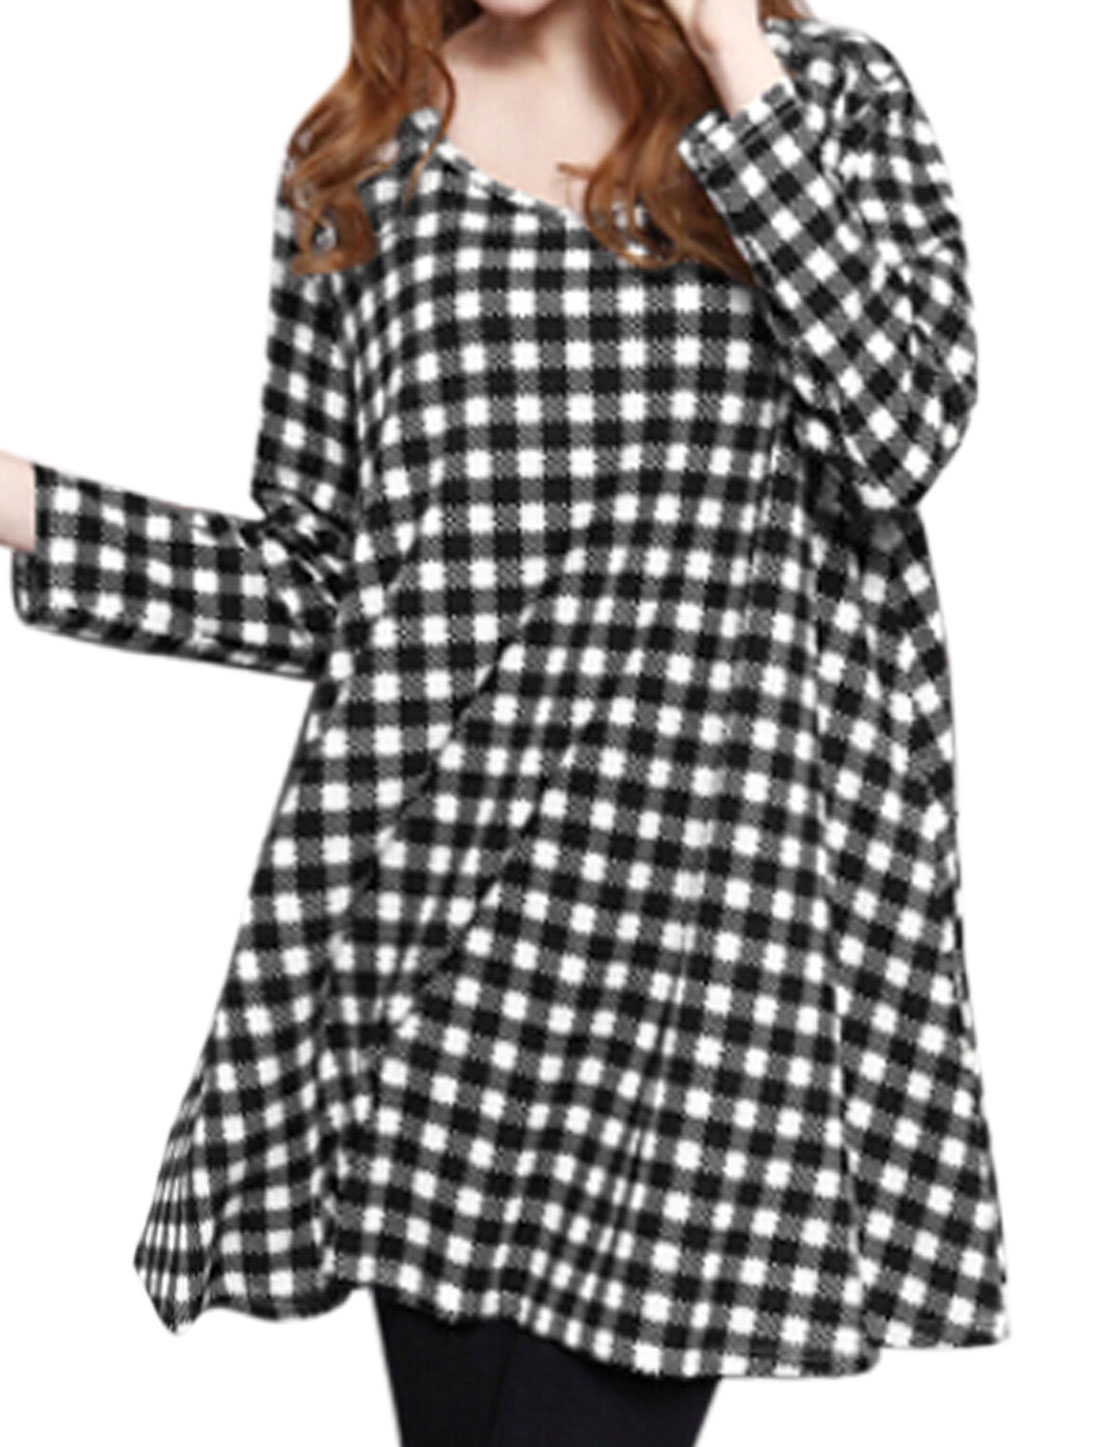 Women Scoop Neck Long Sleeves Flared Plaids Pattern Loose Fit Tunic Top Black M